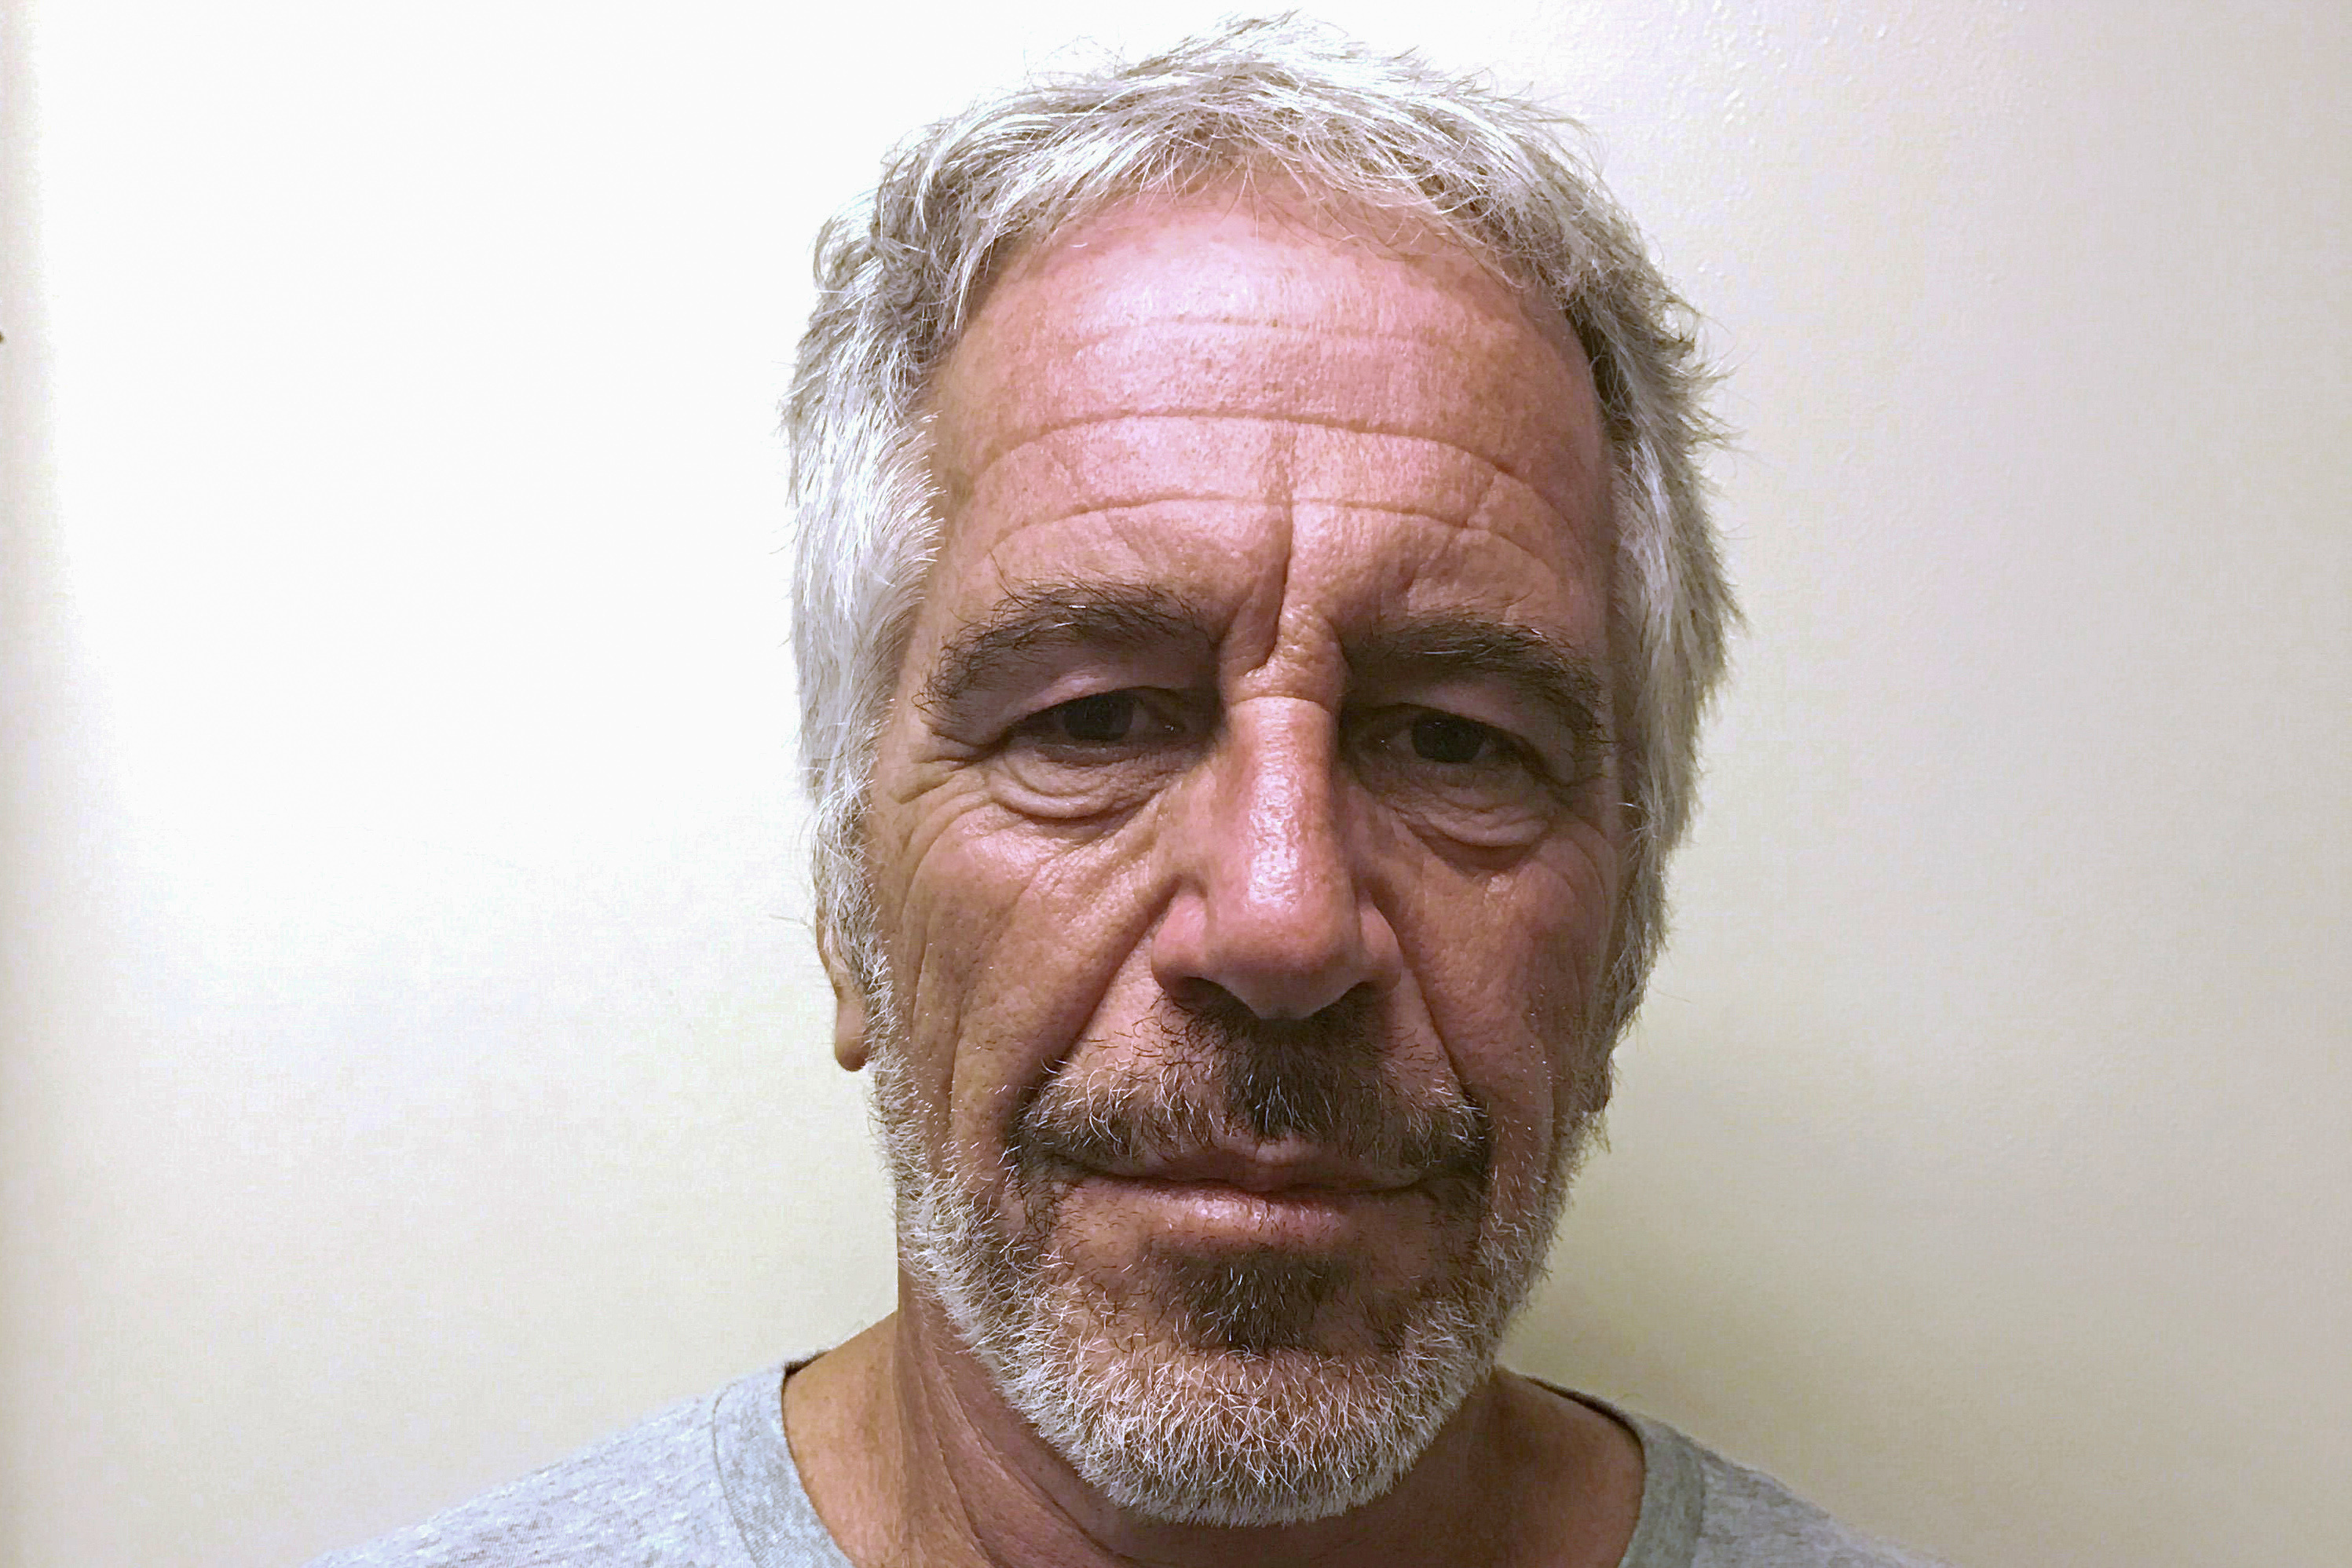 U.S. financier Jeffrey Epstein appears in a photograph taken for the New York State Division of Criminal Justice Services' sex offender registry March 28, 2017 and obtained by Reuters July 10, 2019. (New York State Division of Criminal Justice Services/Handout via REUTERS/File Photo)